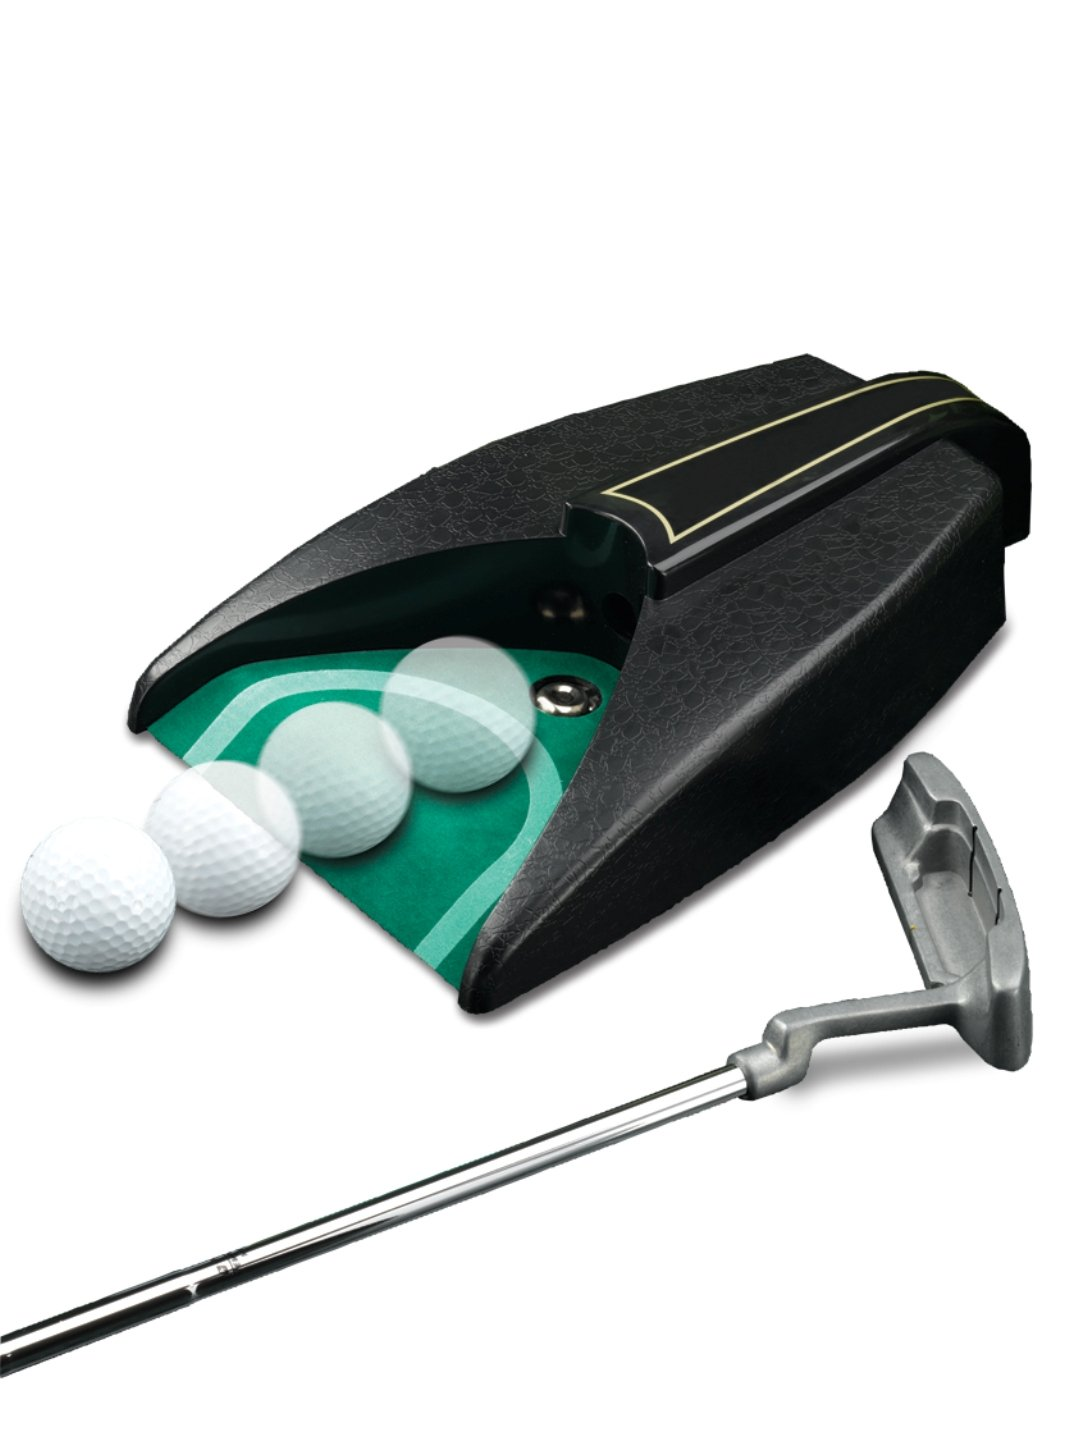 JEF World Of Golf Automatic Putting Cup   B003UFEA6M